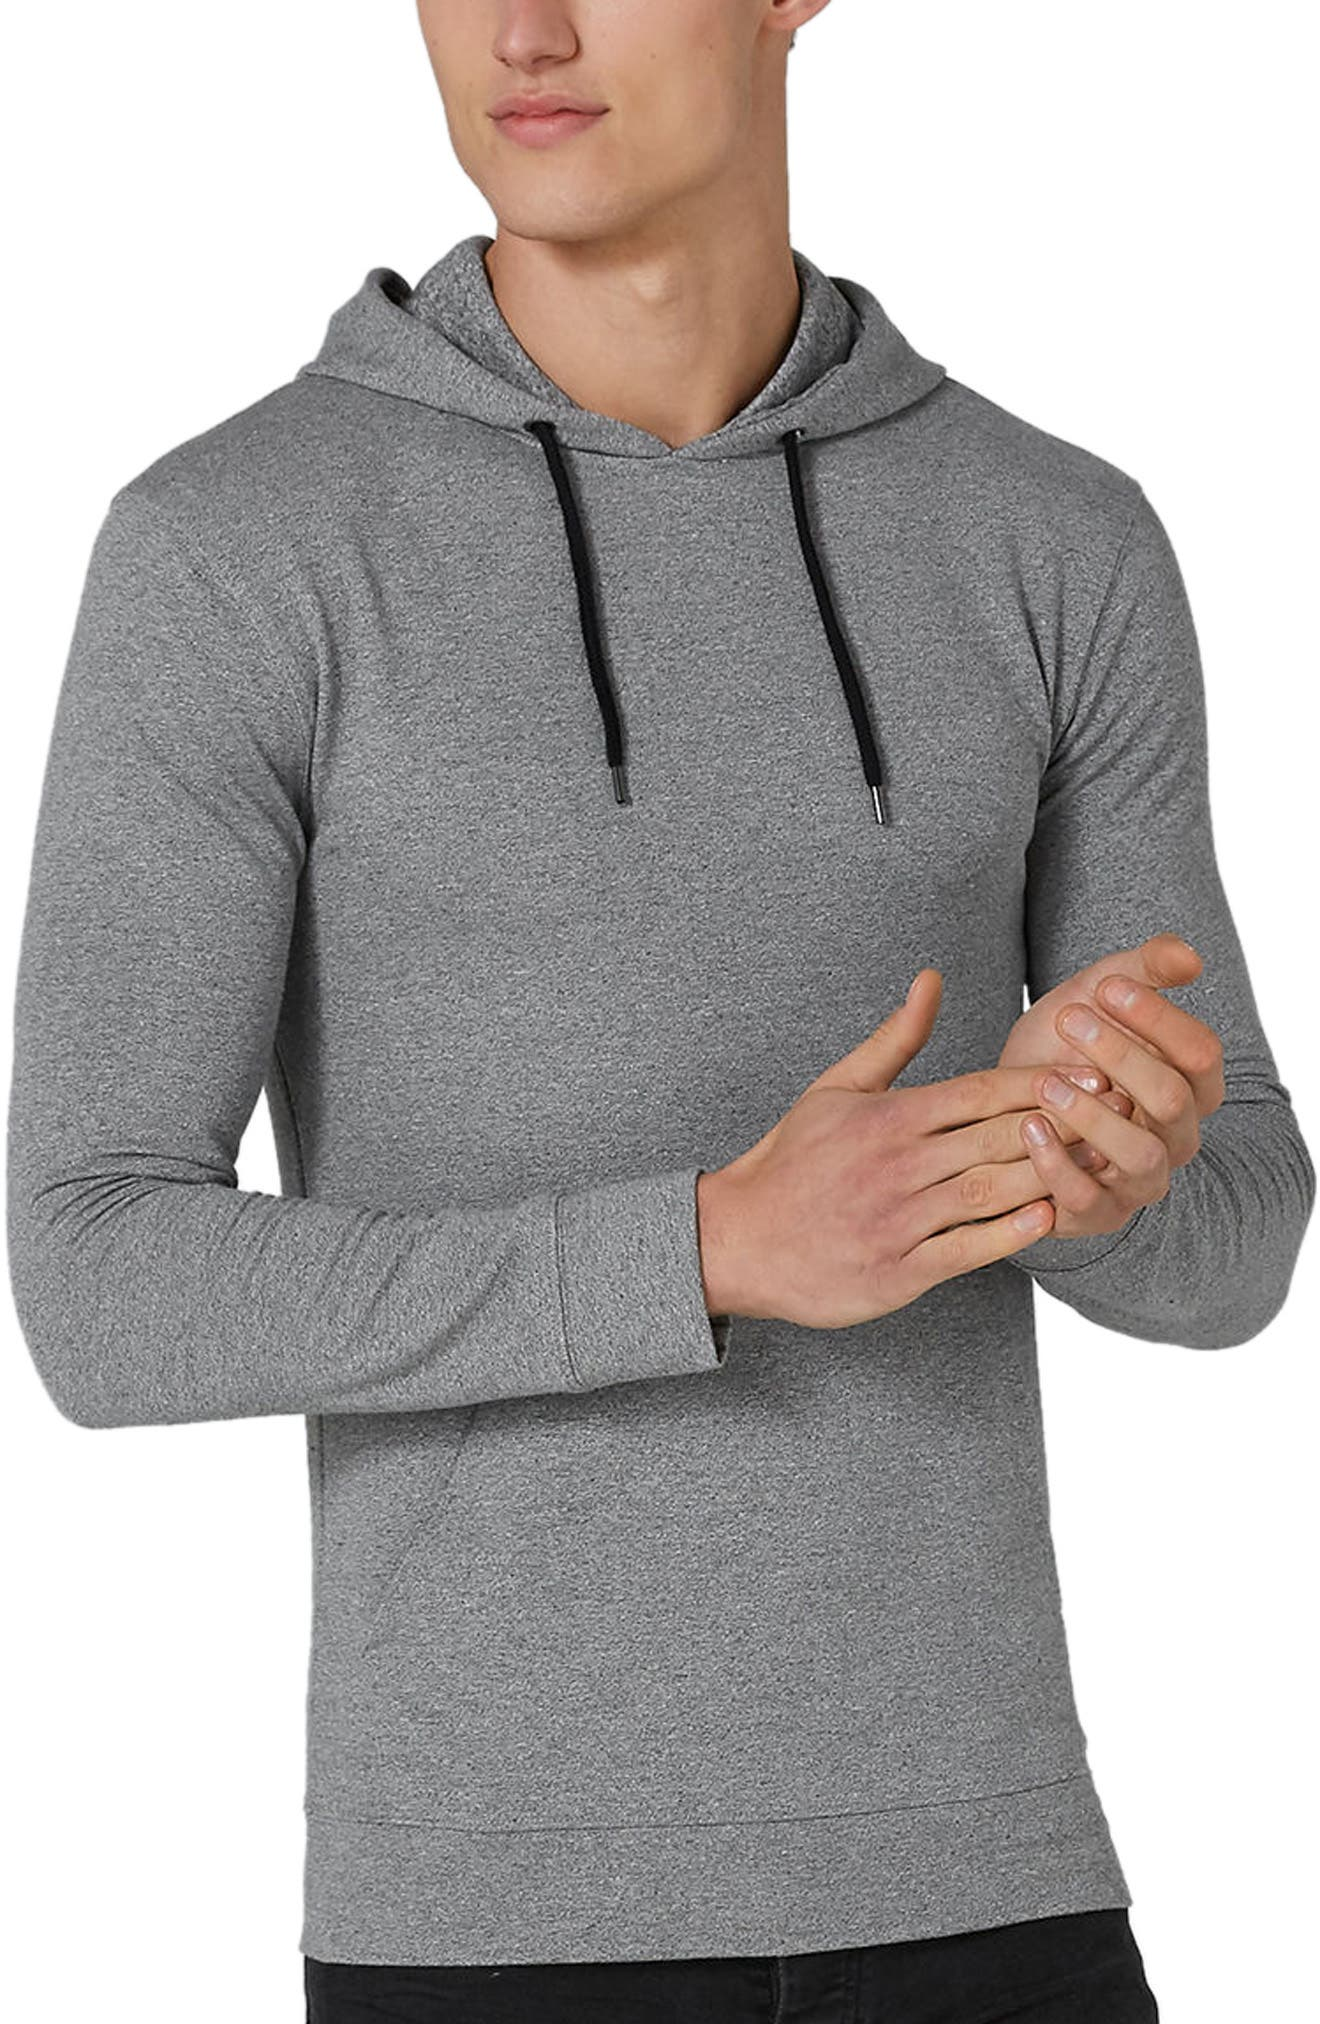 Muscle Fit Hoodie,                             Main thumbnail 1, color,                             020